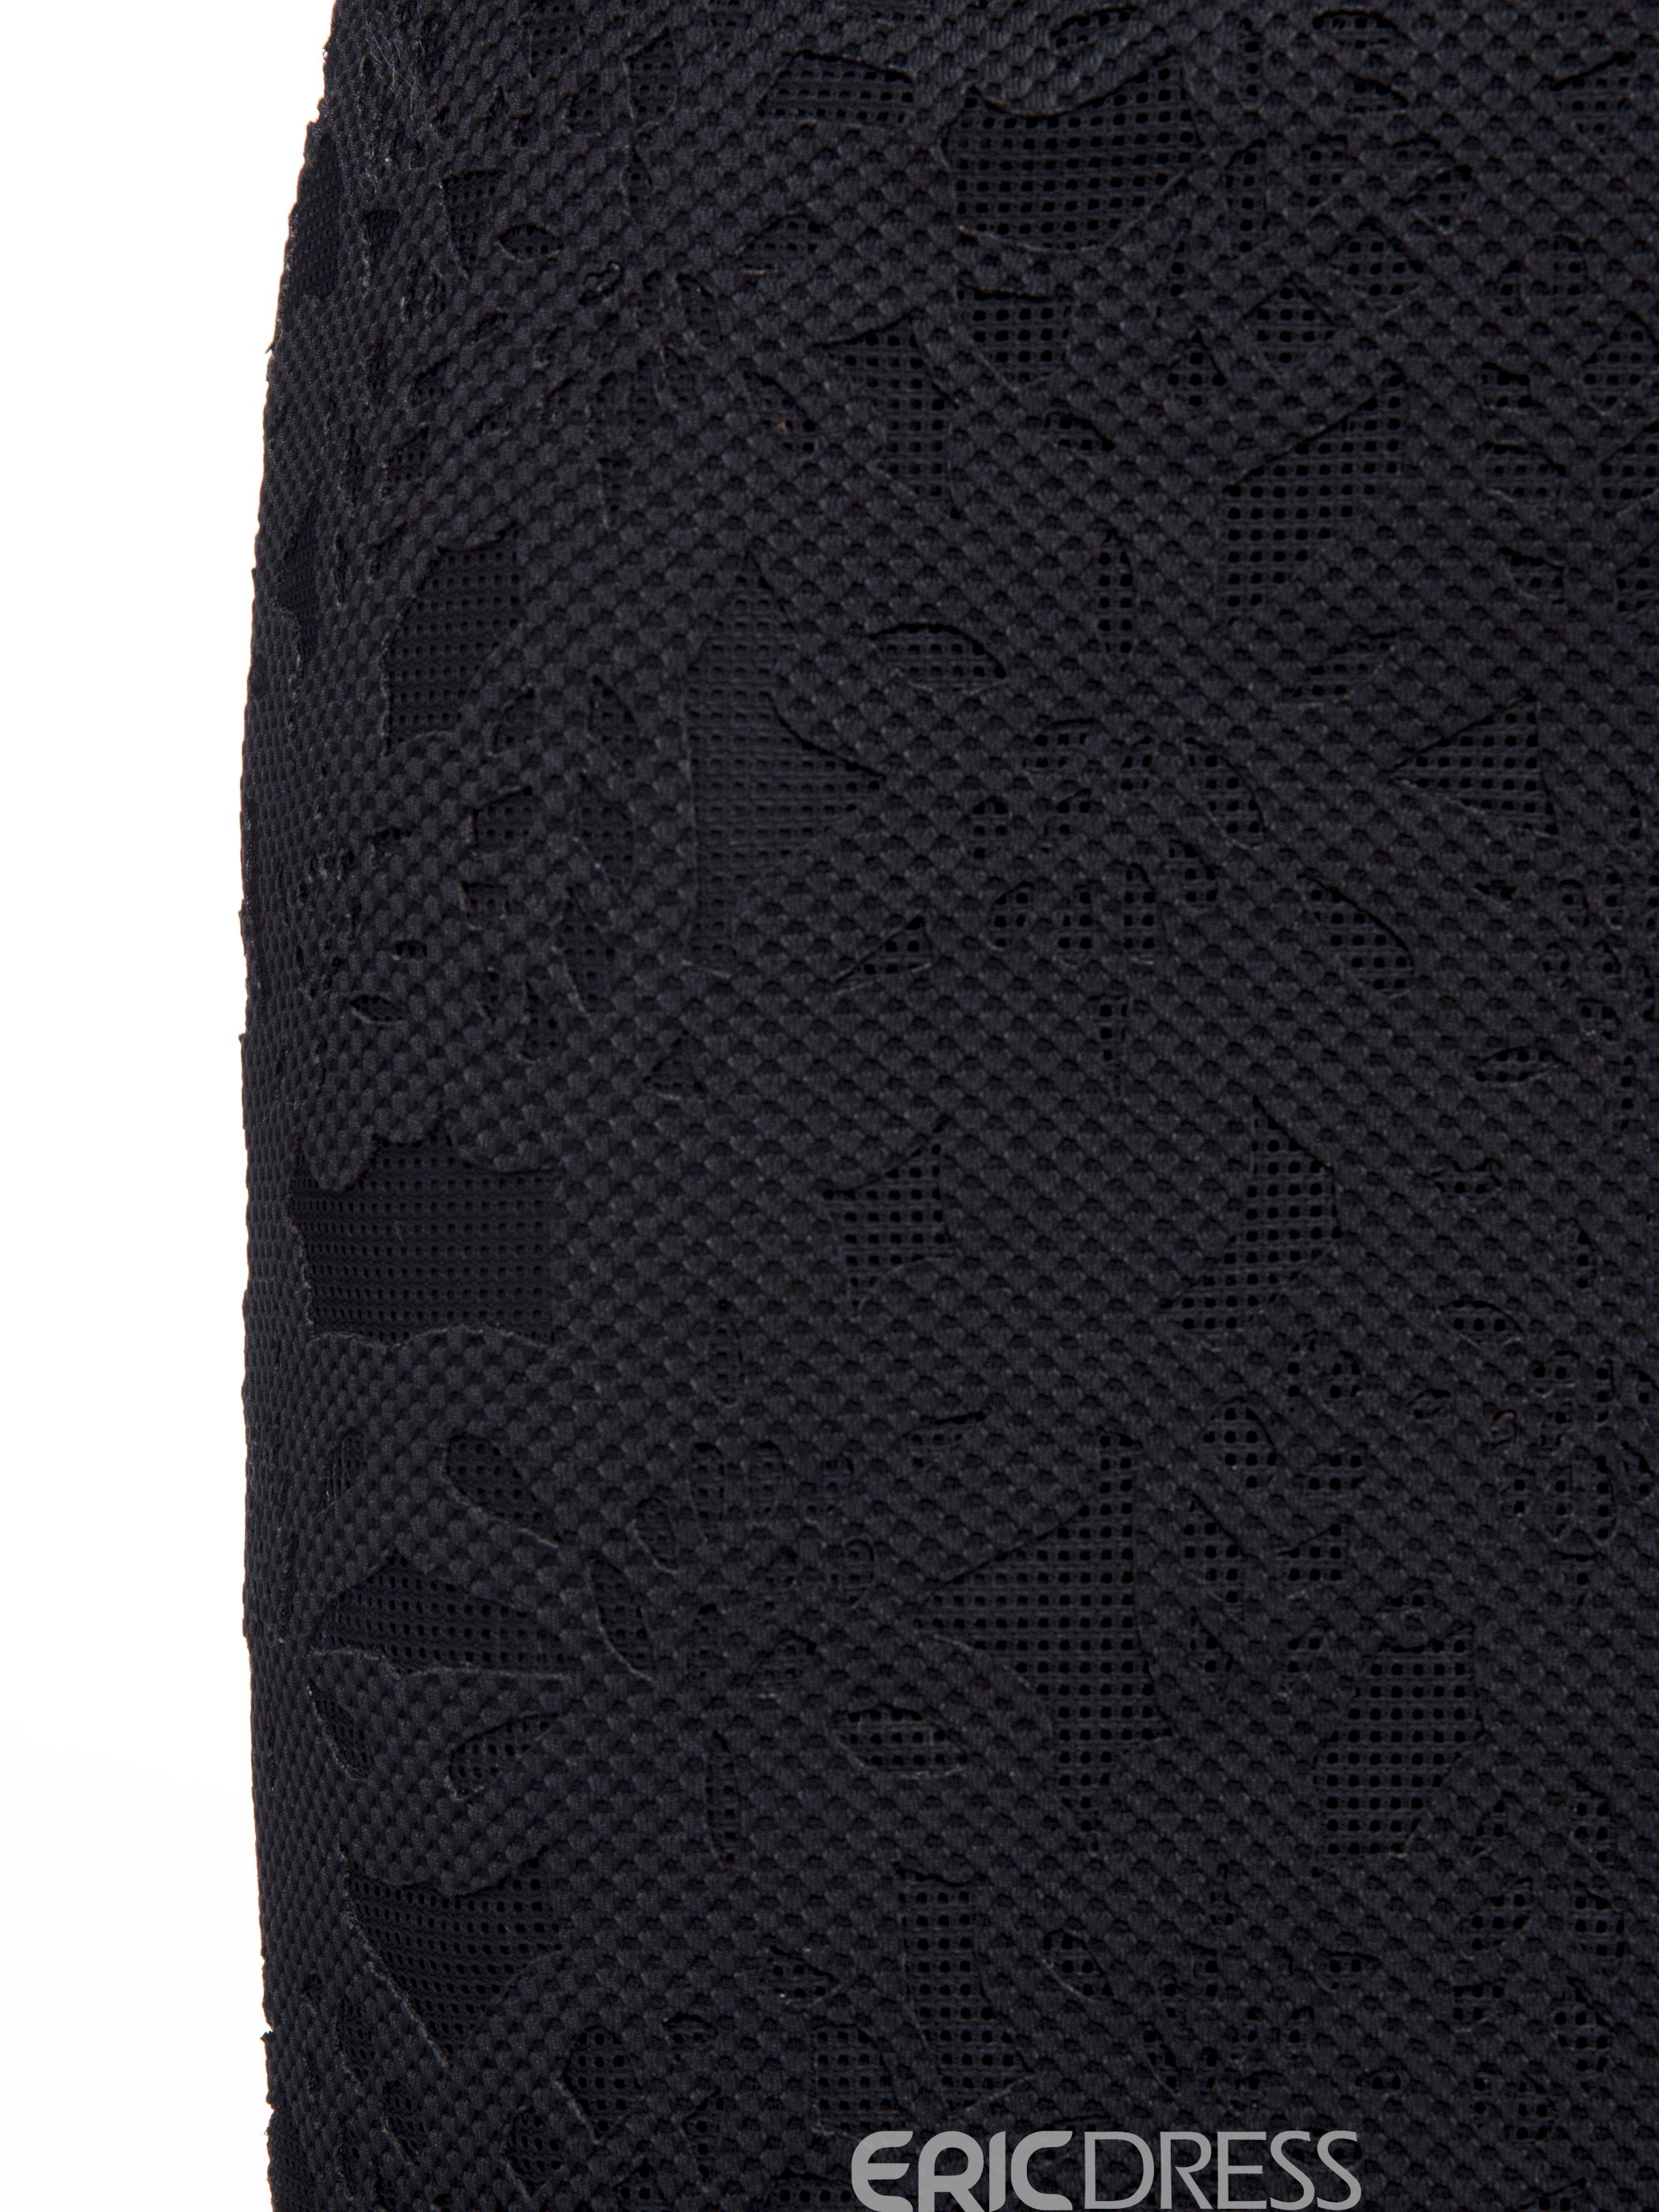 Ericdress Lace Bodycon Mid-Calf Women's Skirt